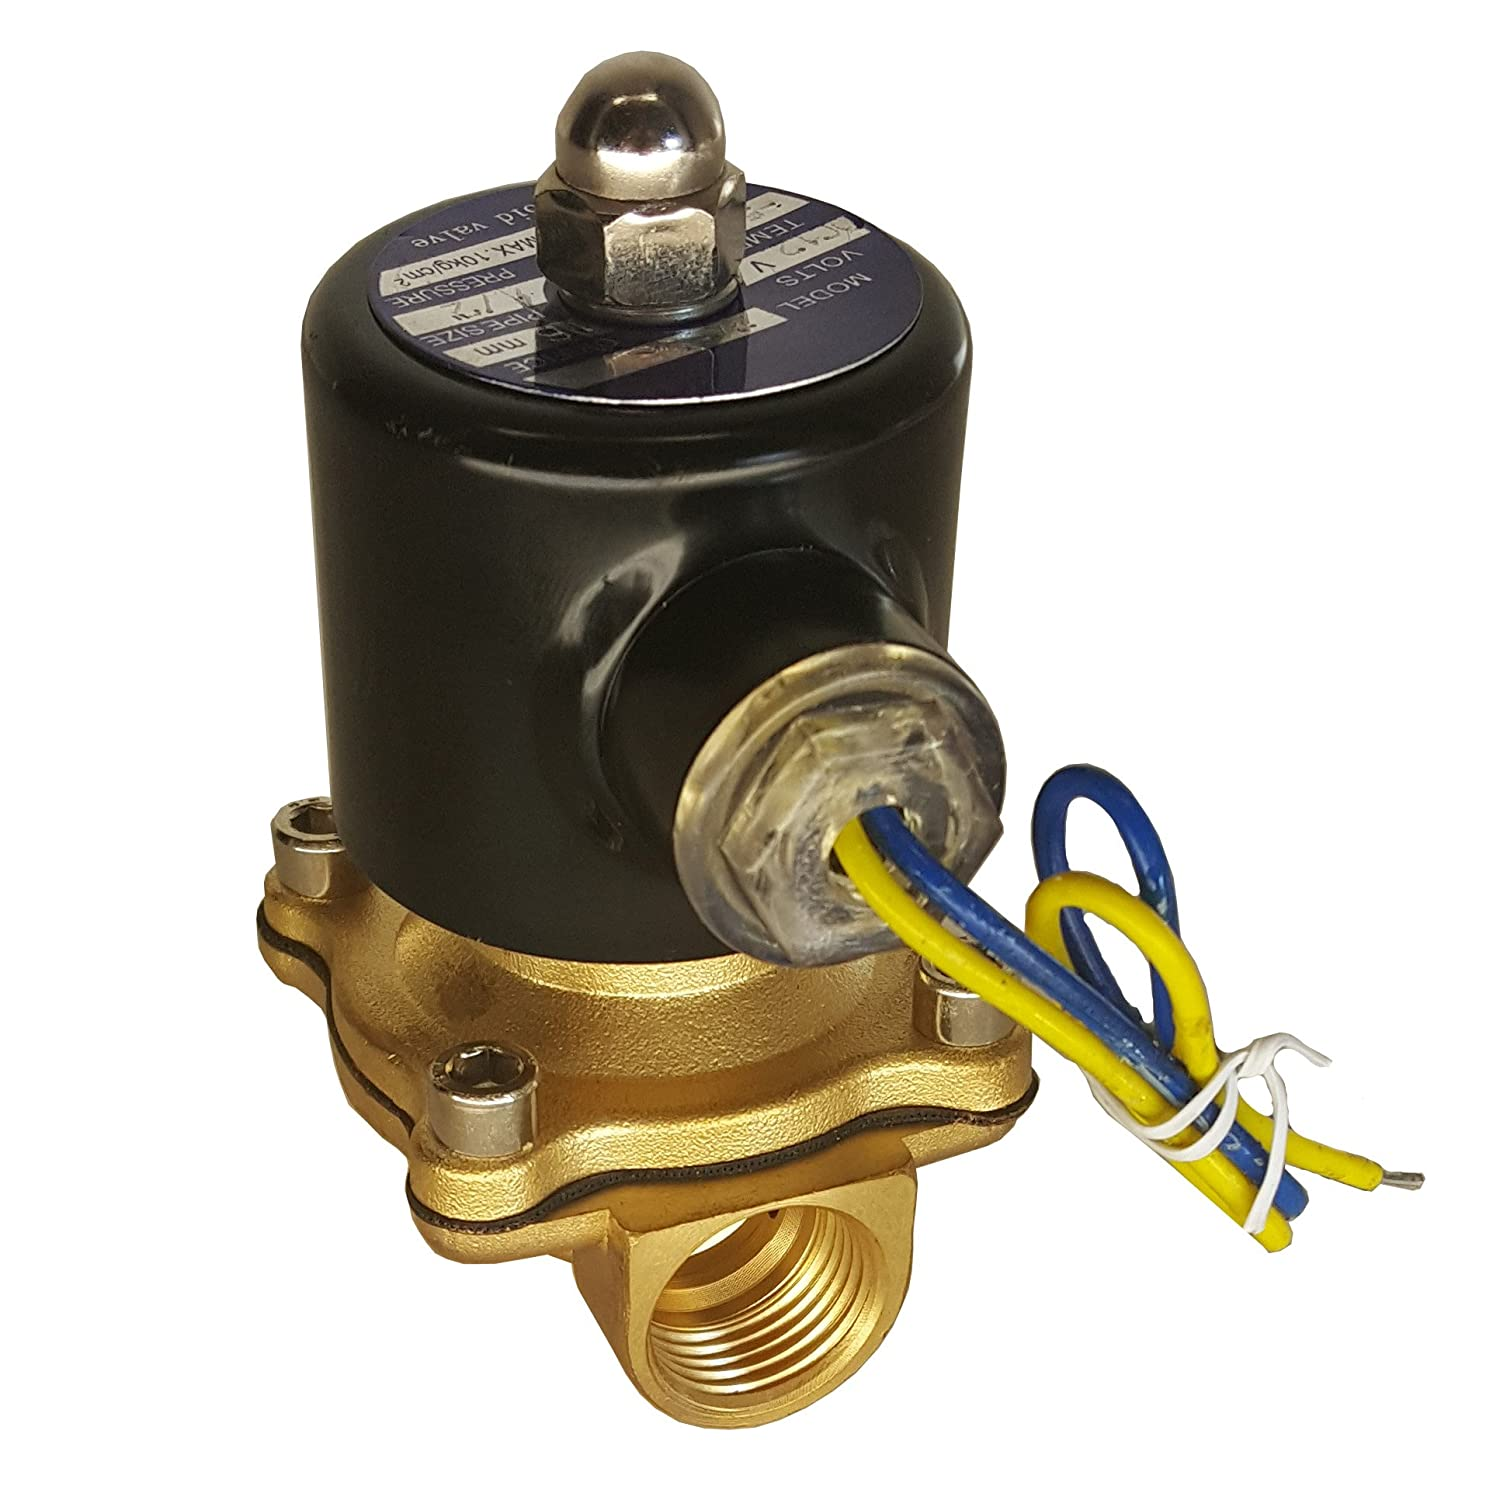 HFS 110v Ac Electric Solenoid Valve Water Cheap sale Air Max 42% OFF Gas - N Fuels c 1